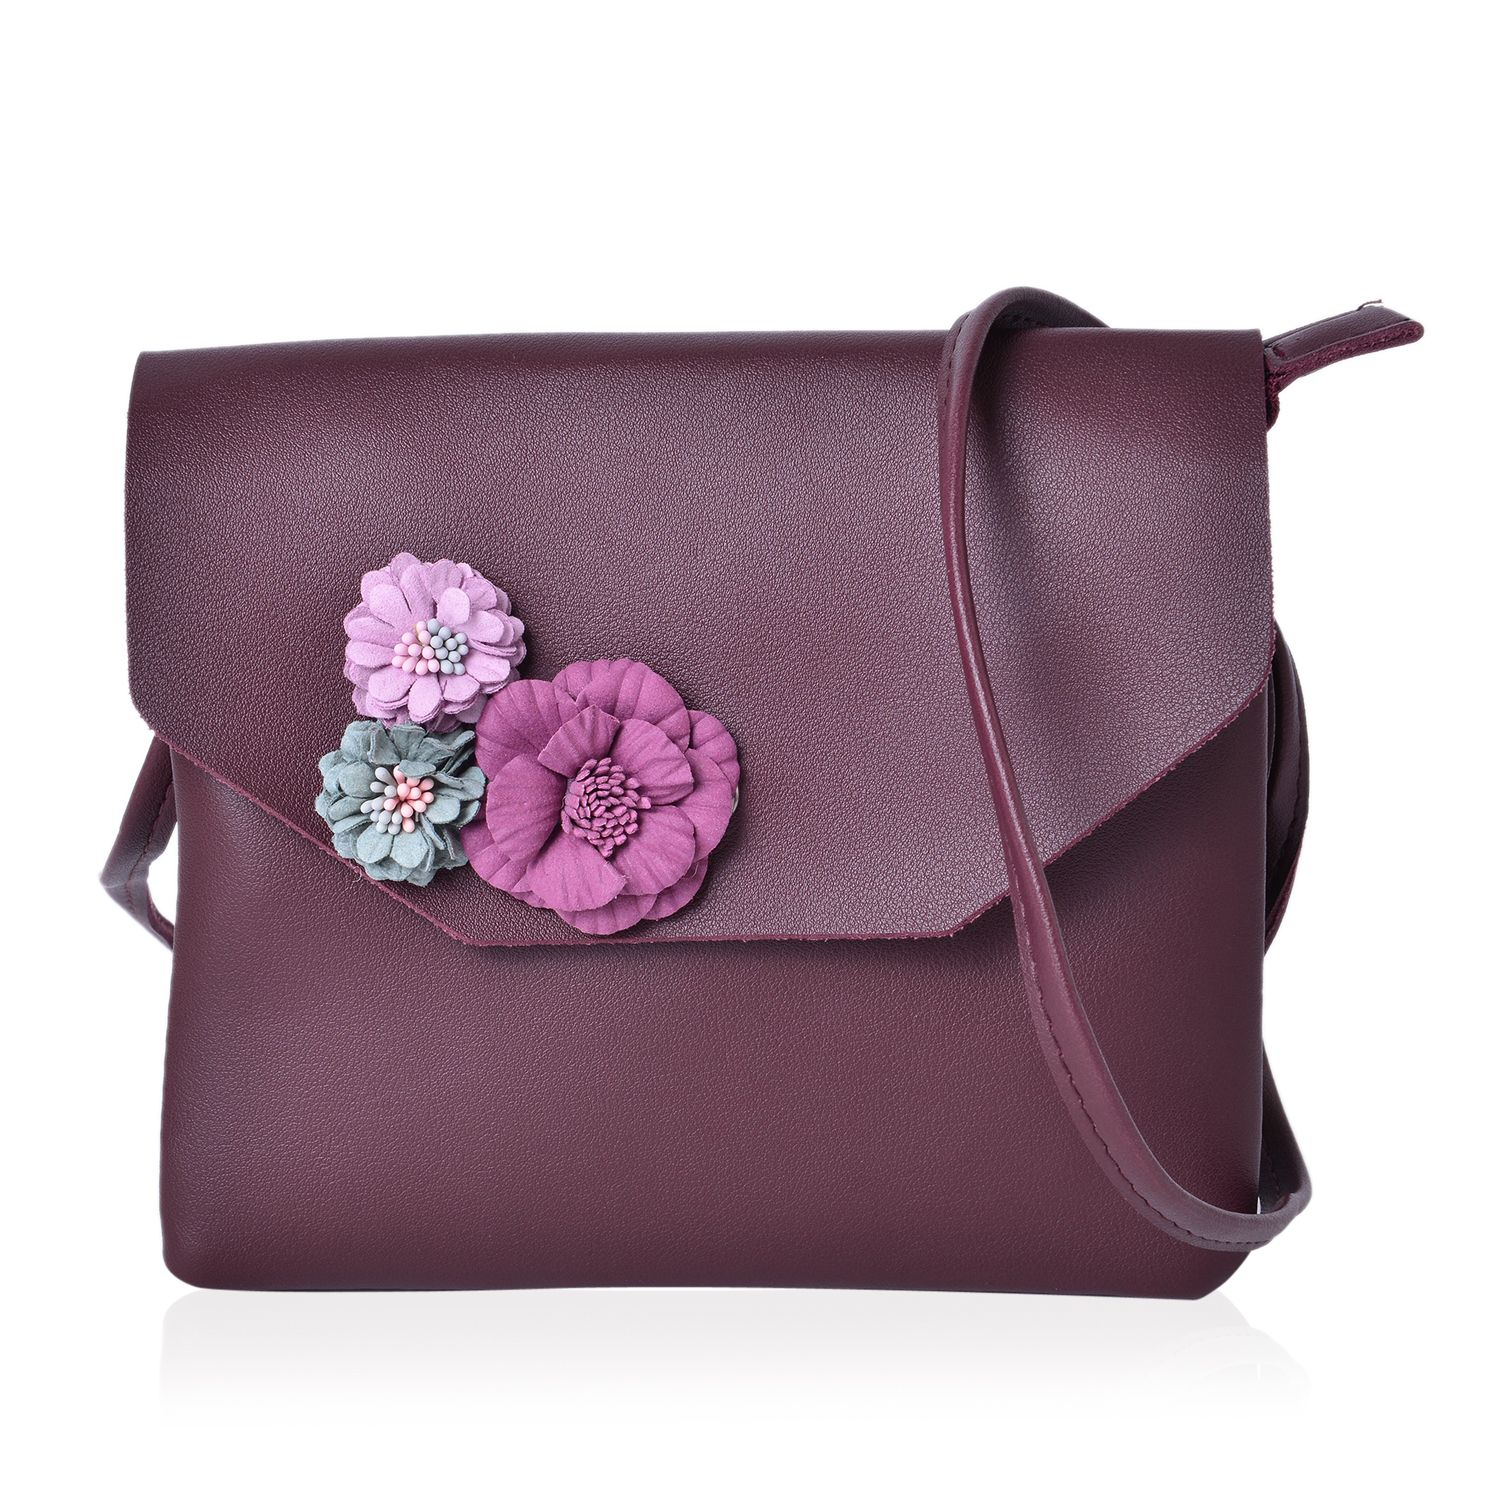 Burgundy Faux Leather 3D Floral Crossbody Bag (7.5x6.5 in)